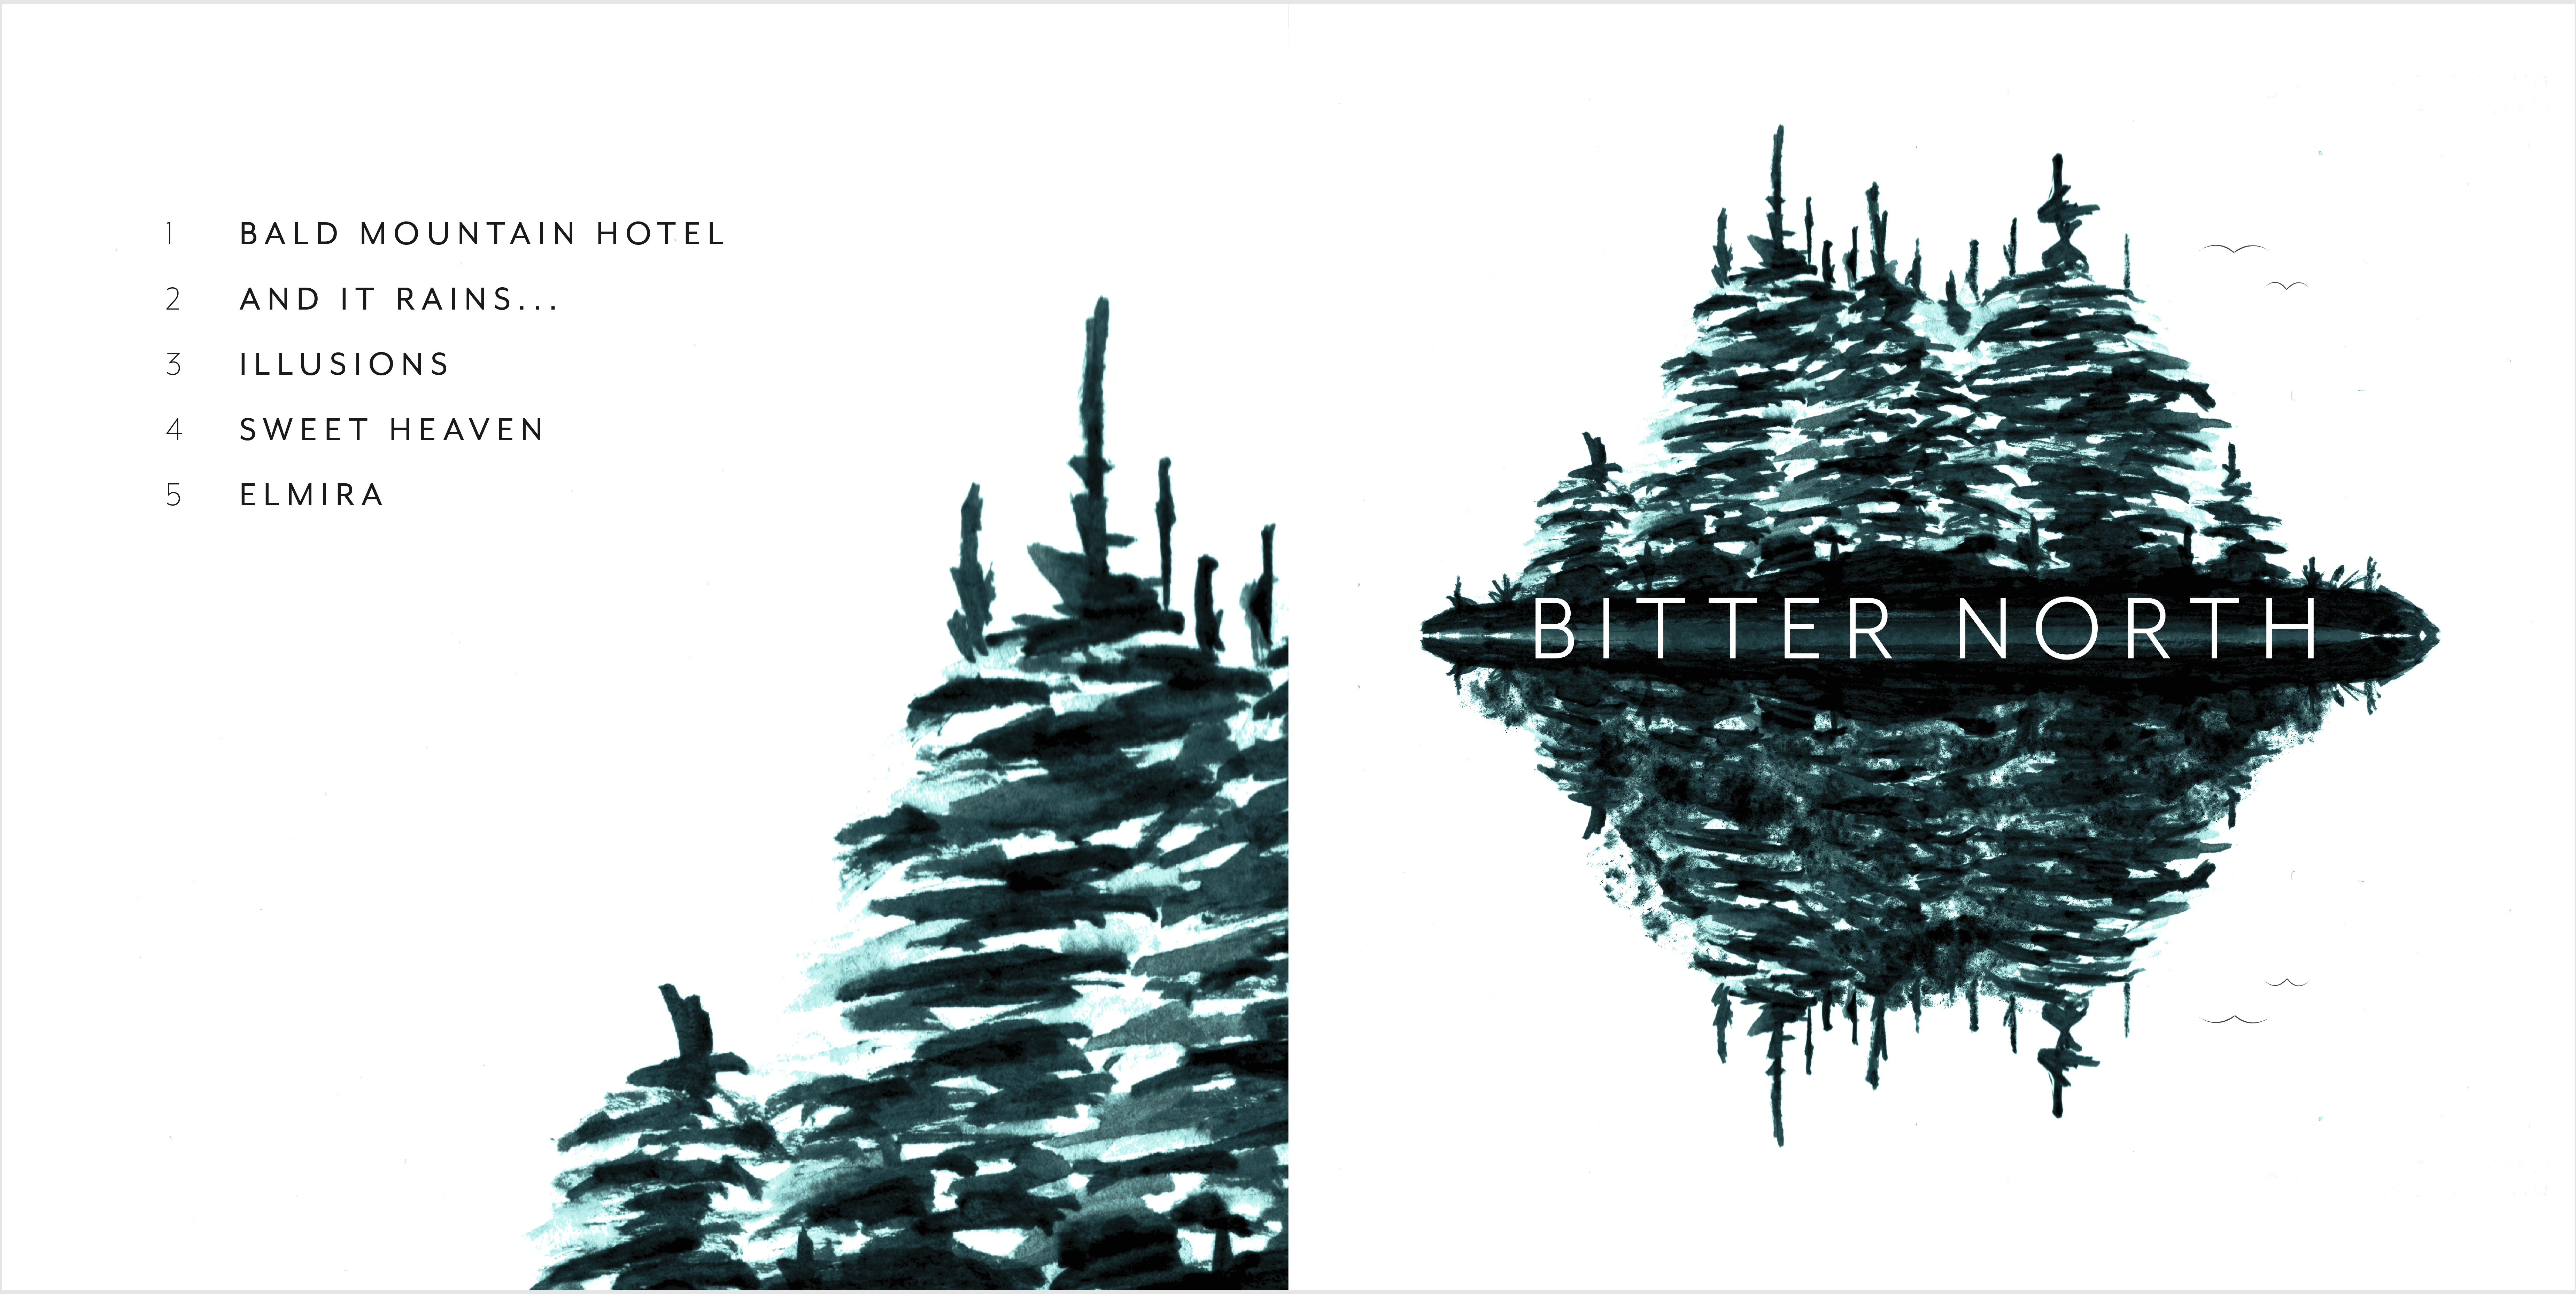 Front and reverse covers of the Bitter North self-titled EP album cover